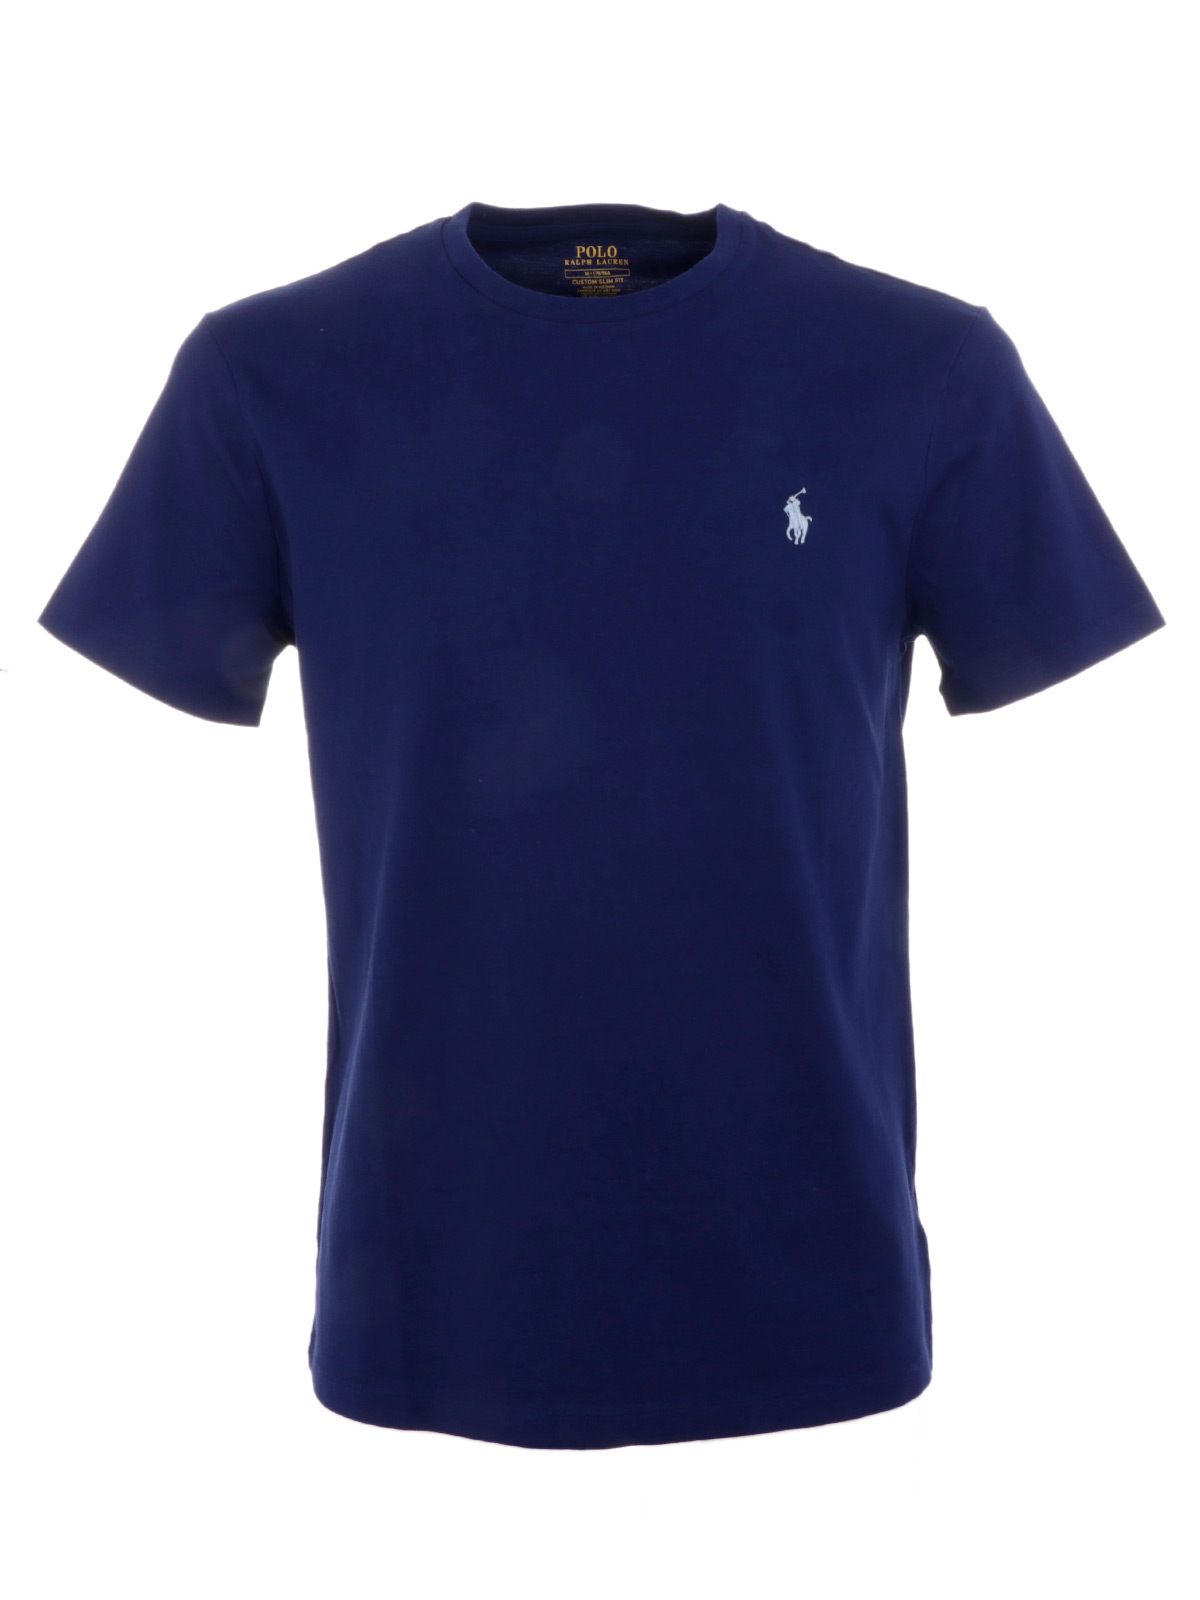 POLO RALPH LAUREN Men's T shirt